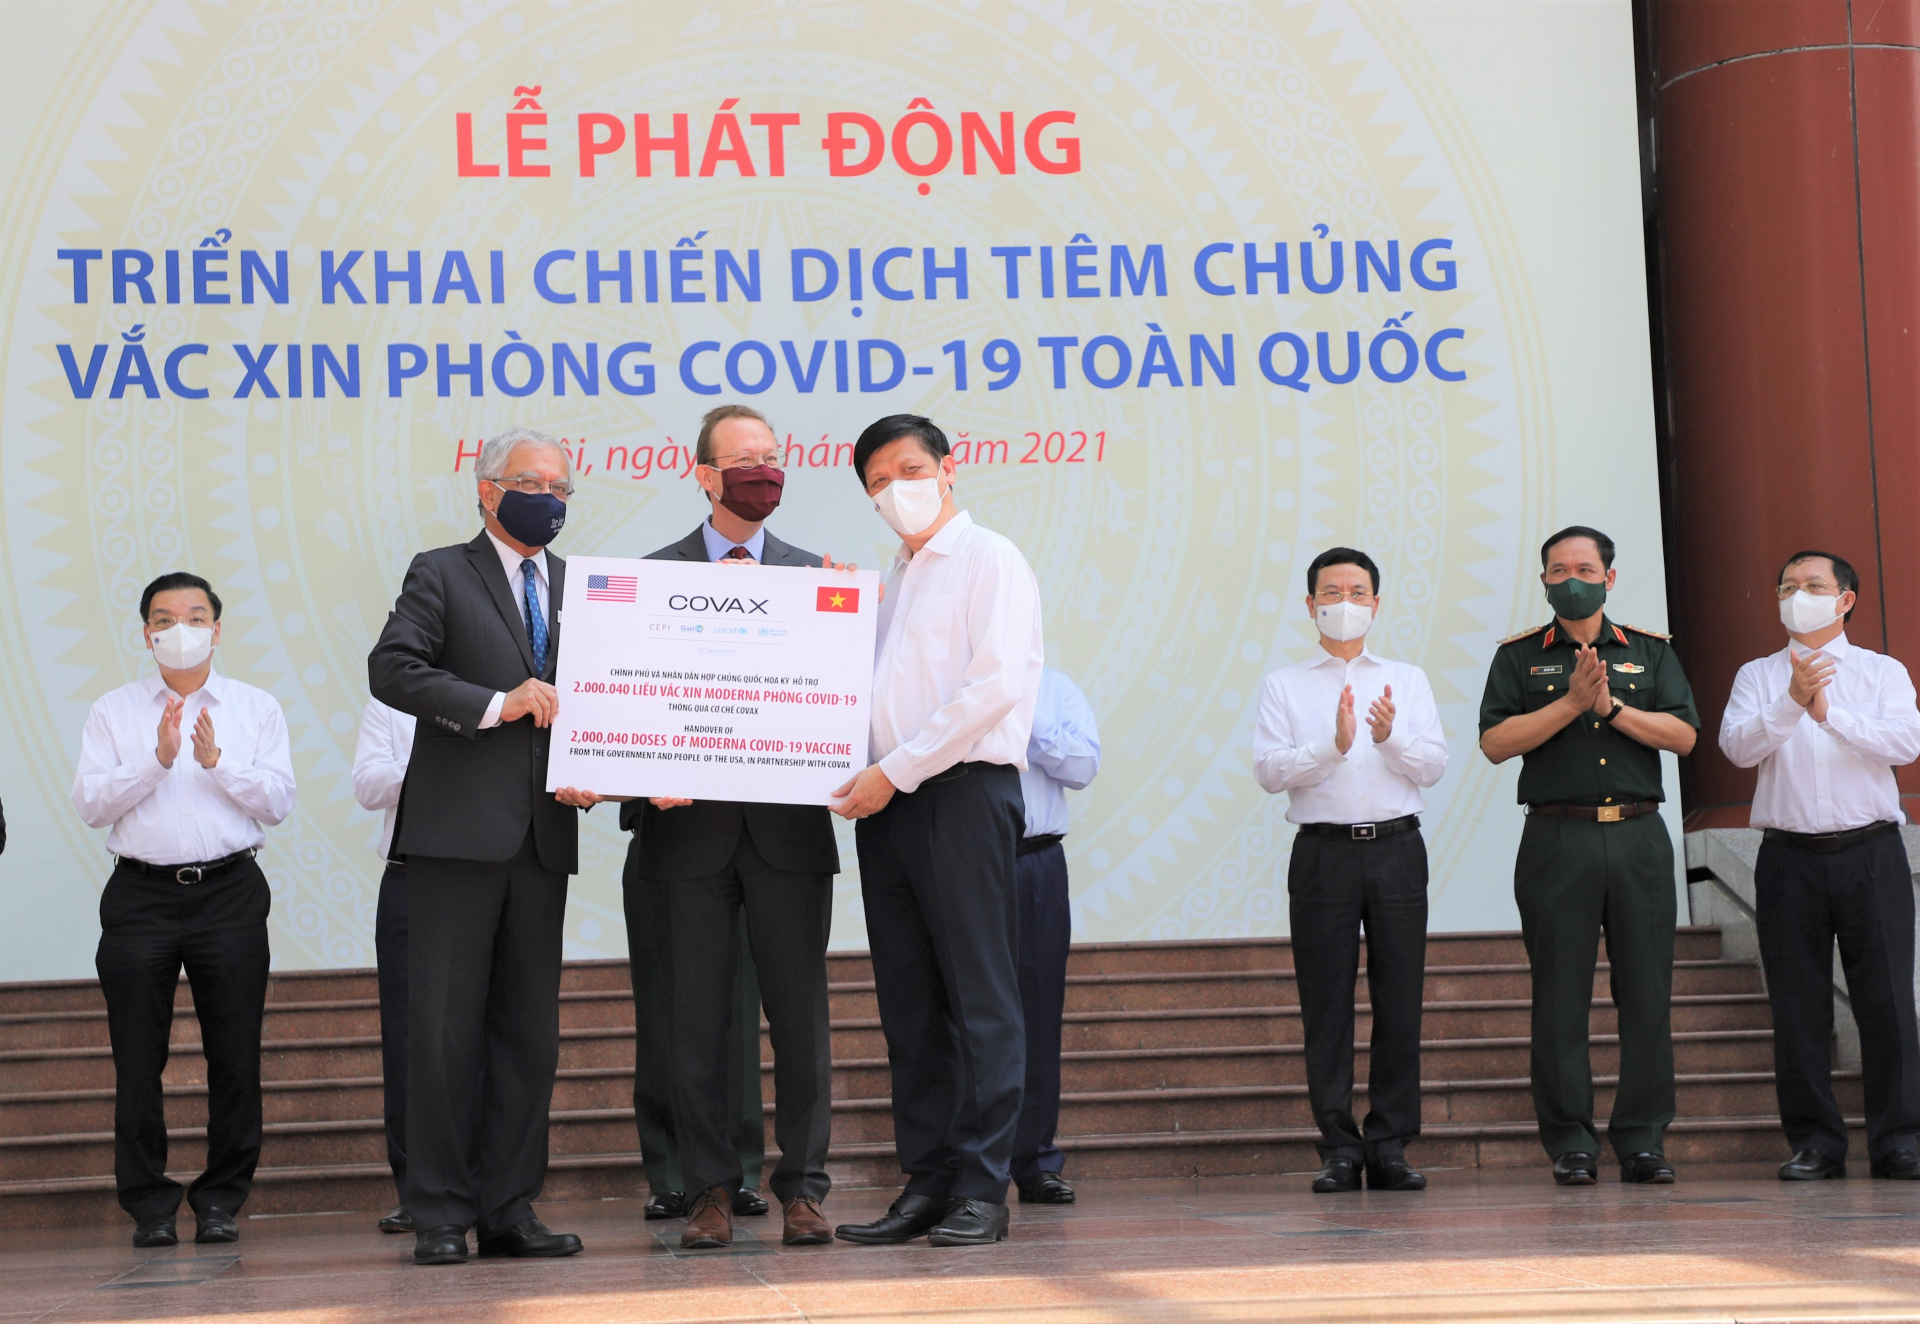 The Minister of Health, authorized by the Prime Minister, on behalf of the Government of Vietnam received 2 million doses of Moderna vaccine.